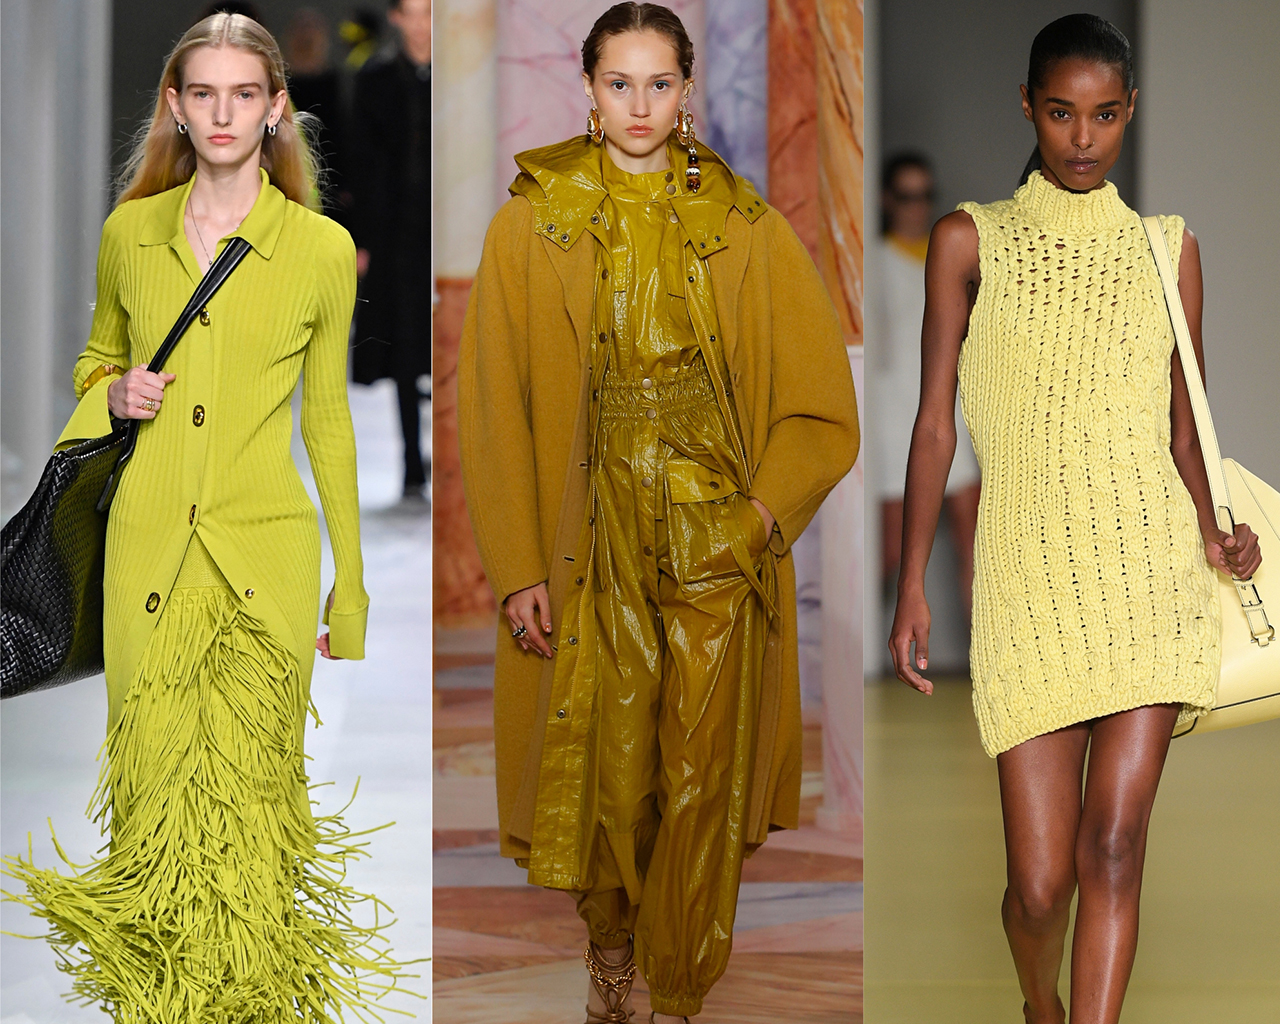 Chartreuse on the runway